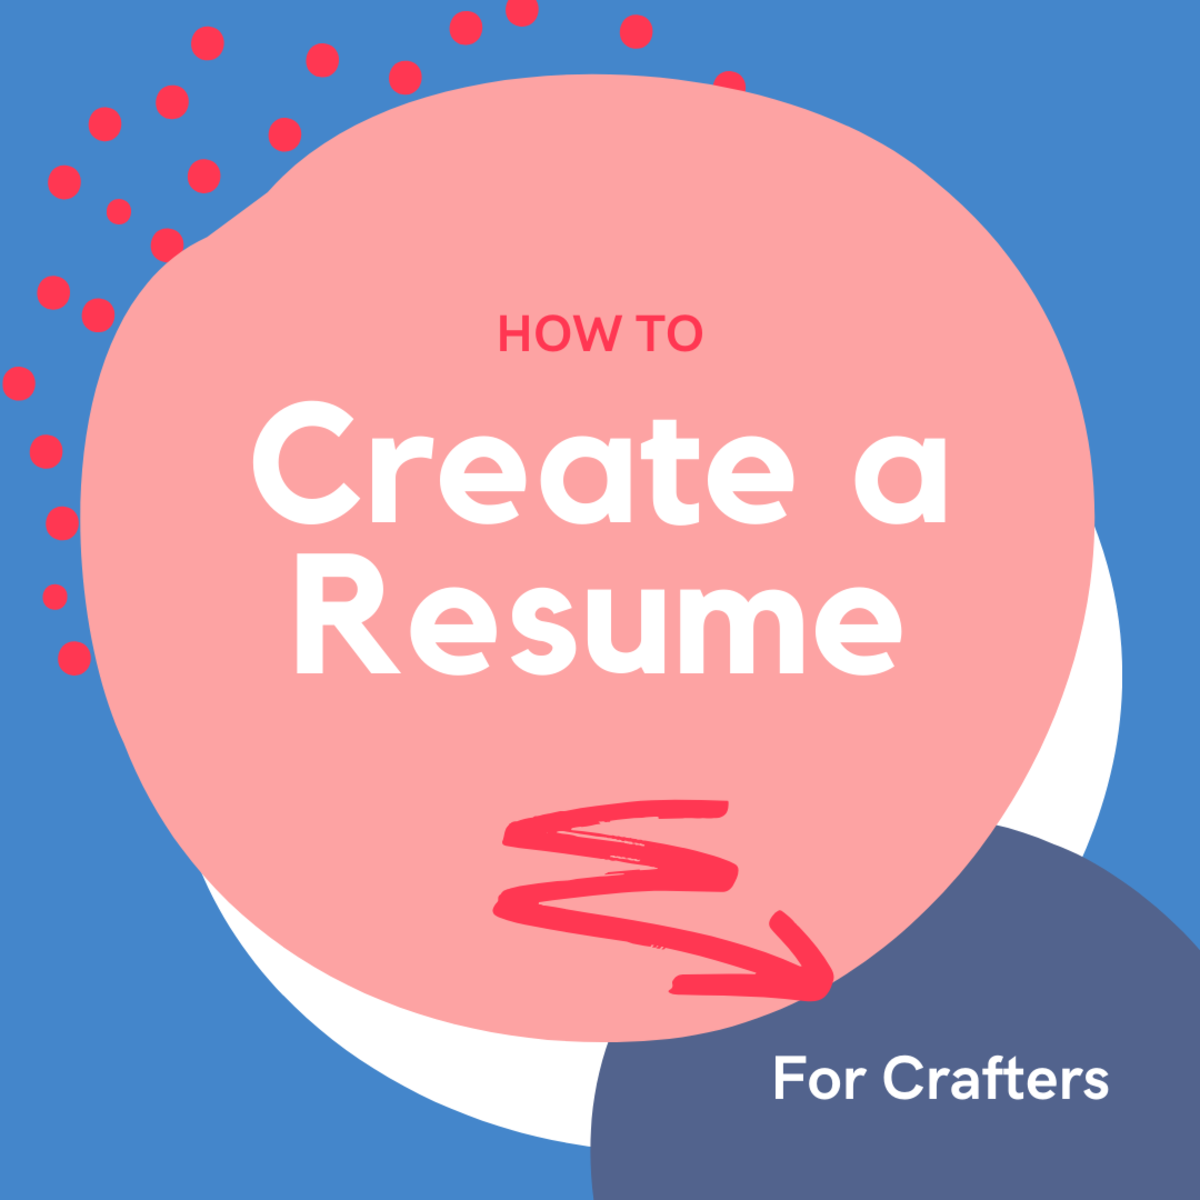 Learn how to craft a resume for crafters!